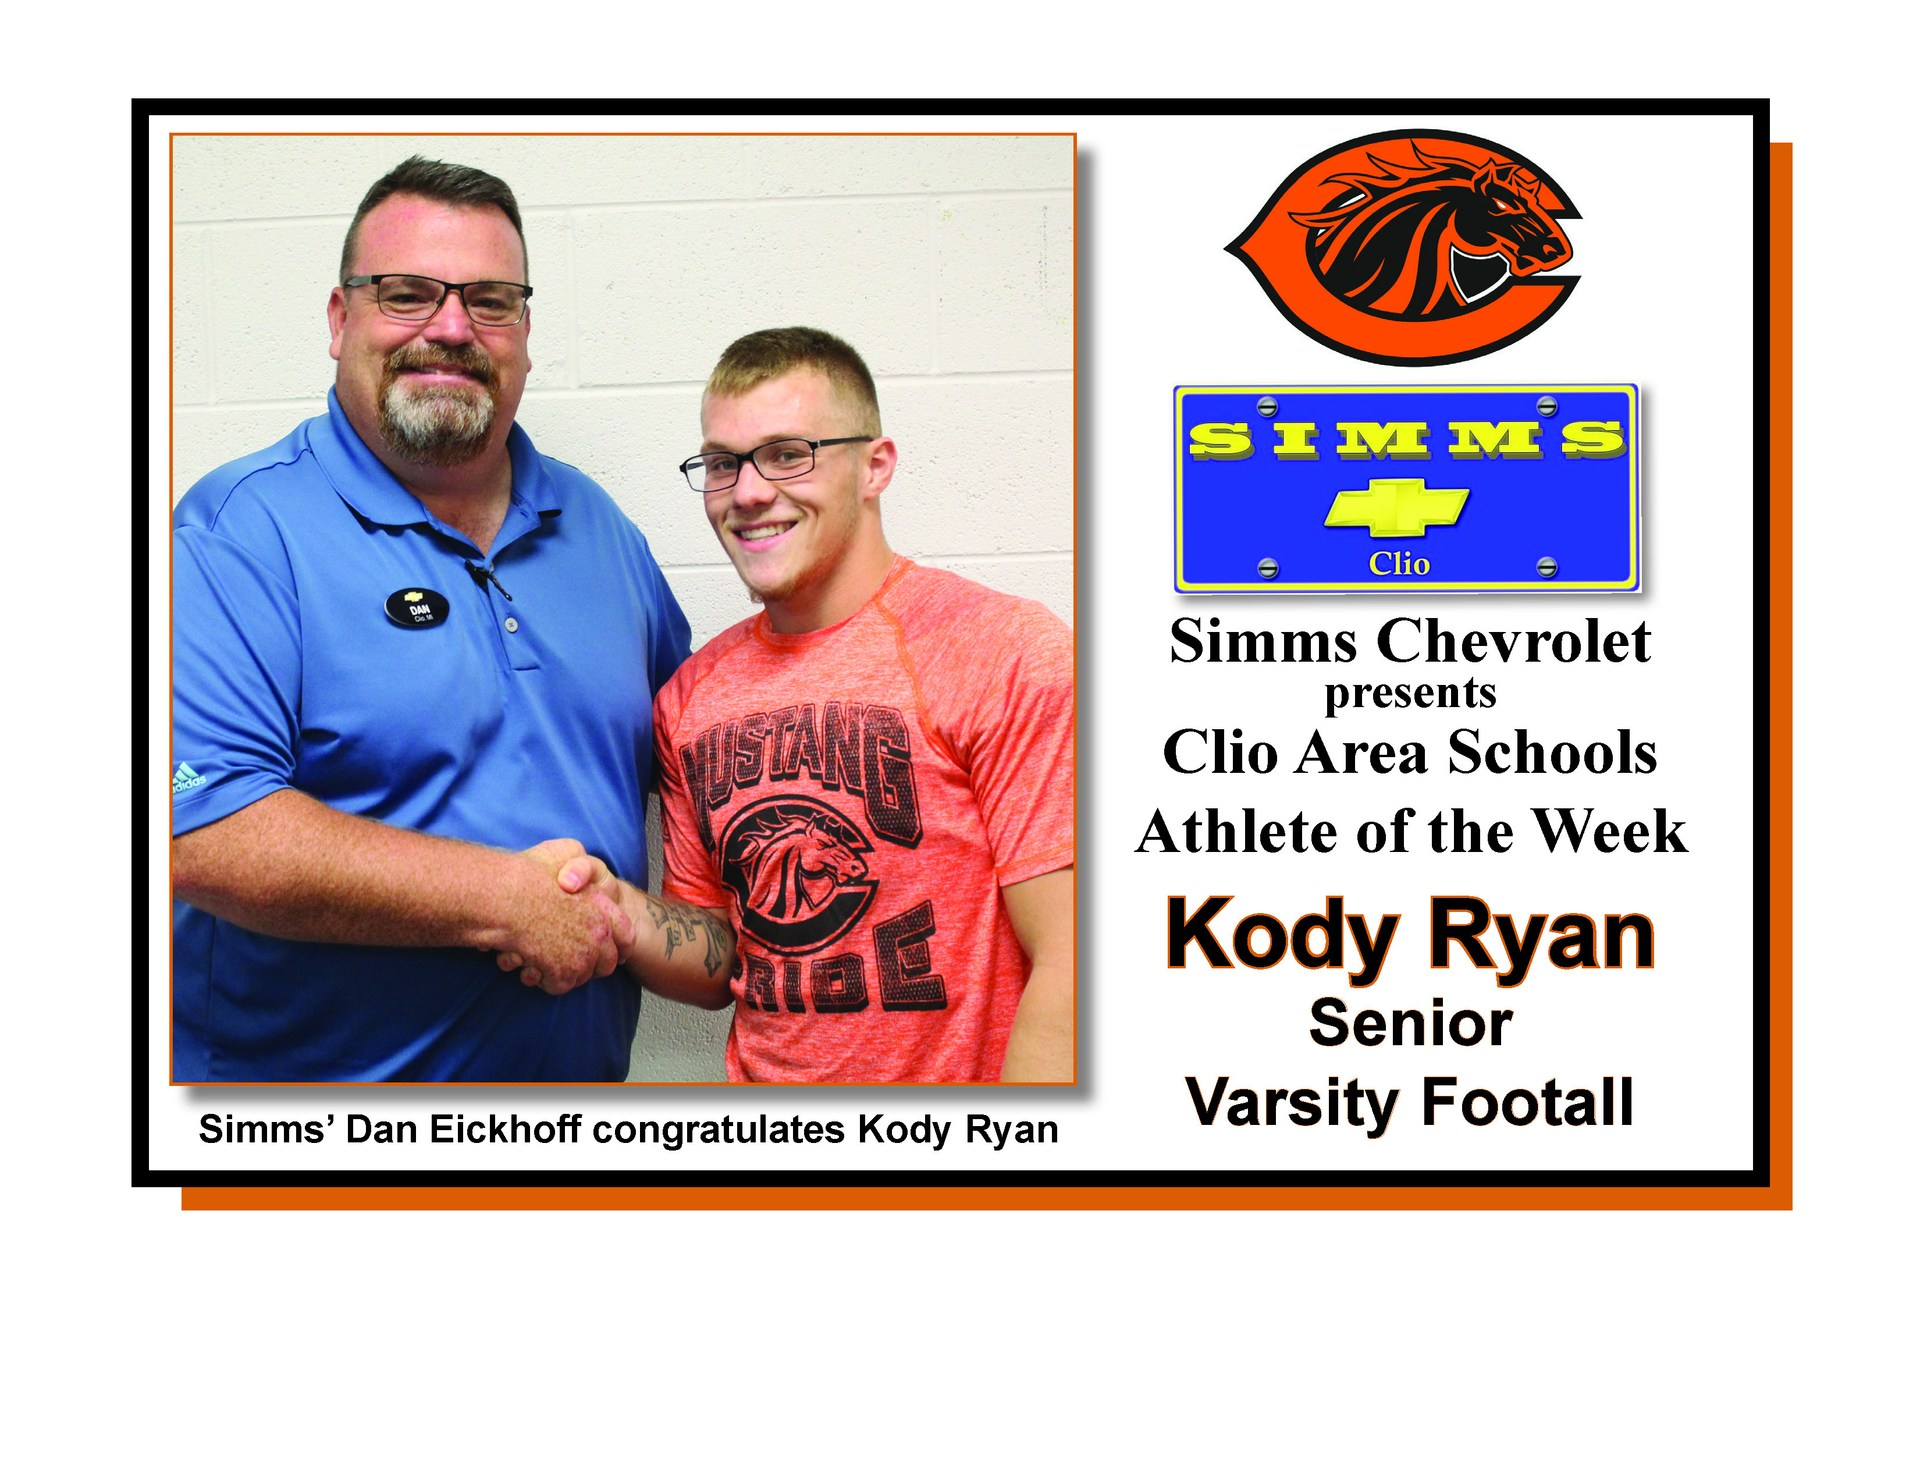 Photo of Kody Ryan receiving Simms Chevrolet Athlete of the Week honors from Dan Eickoff